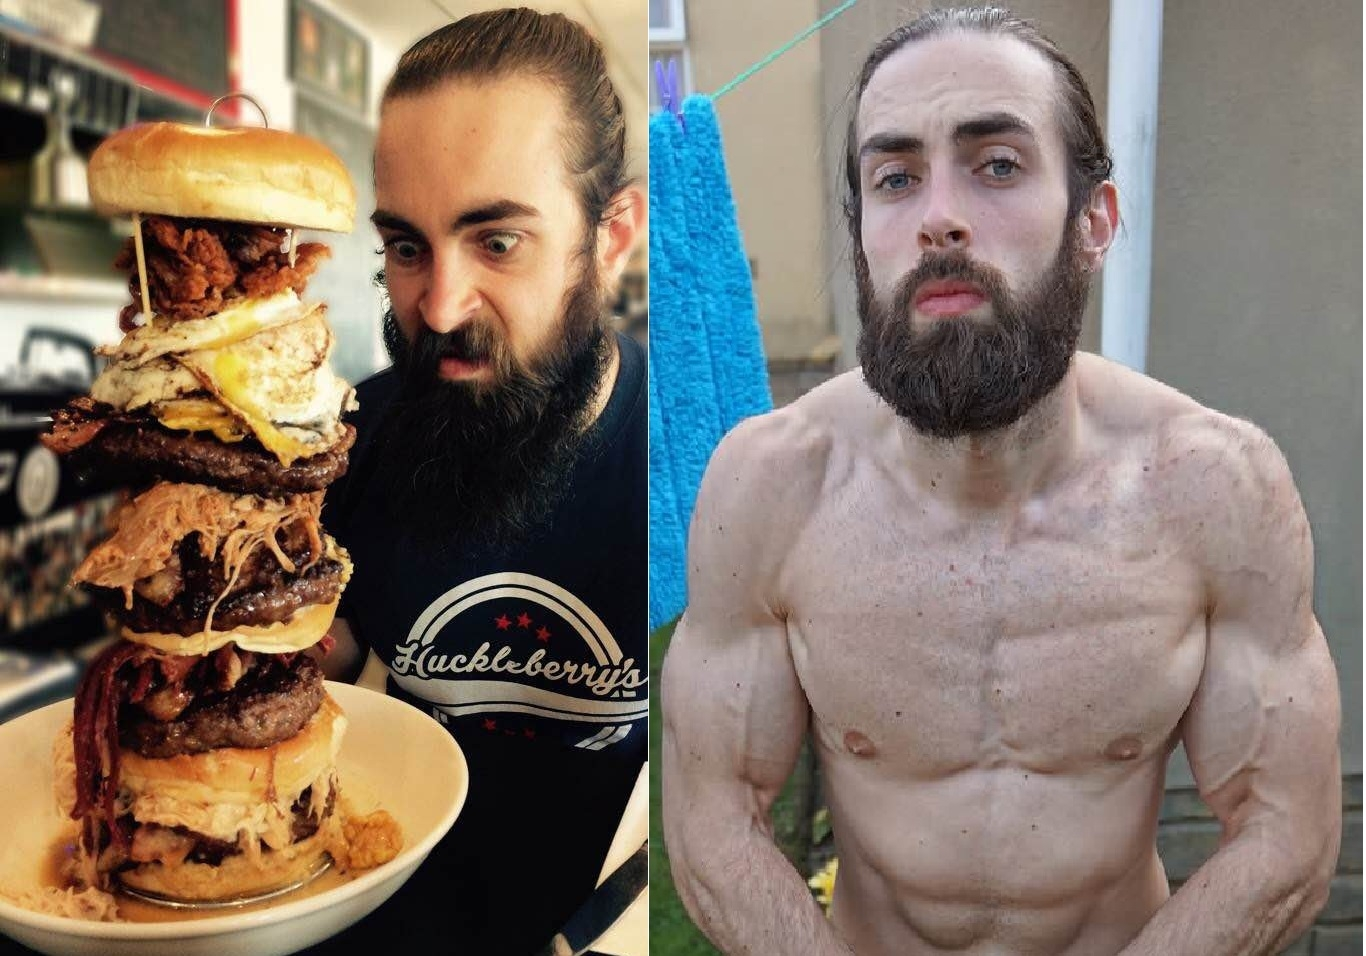 I can't believe he got ripped like this eating 10,000 calories in one sitting!